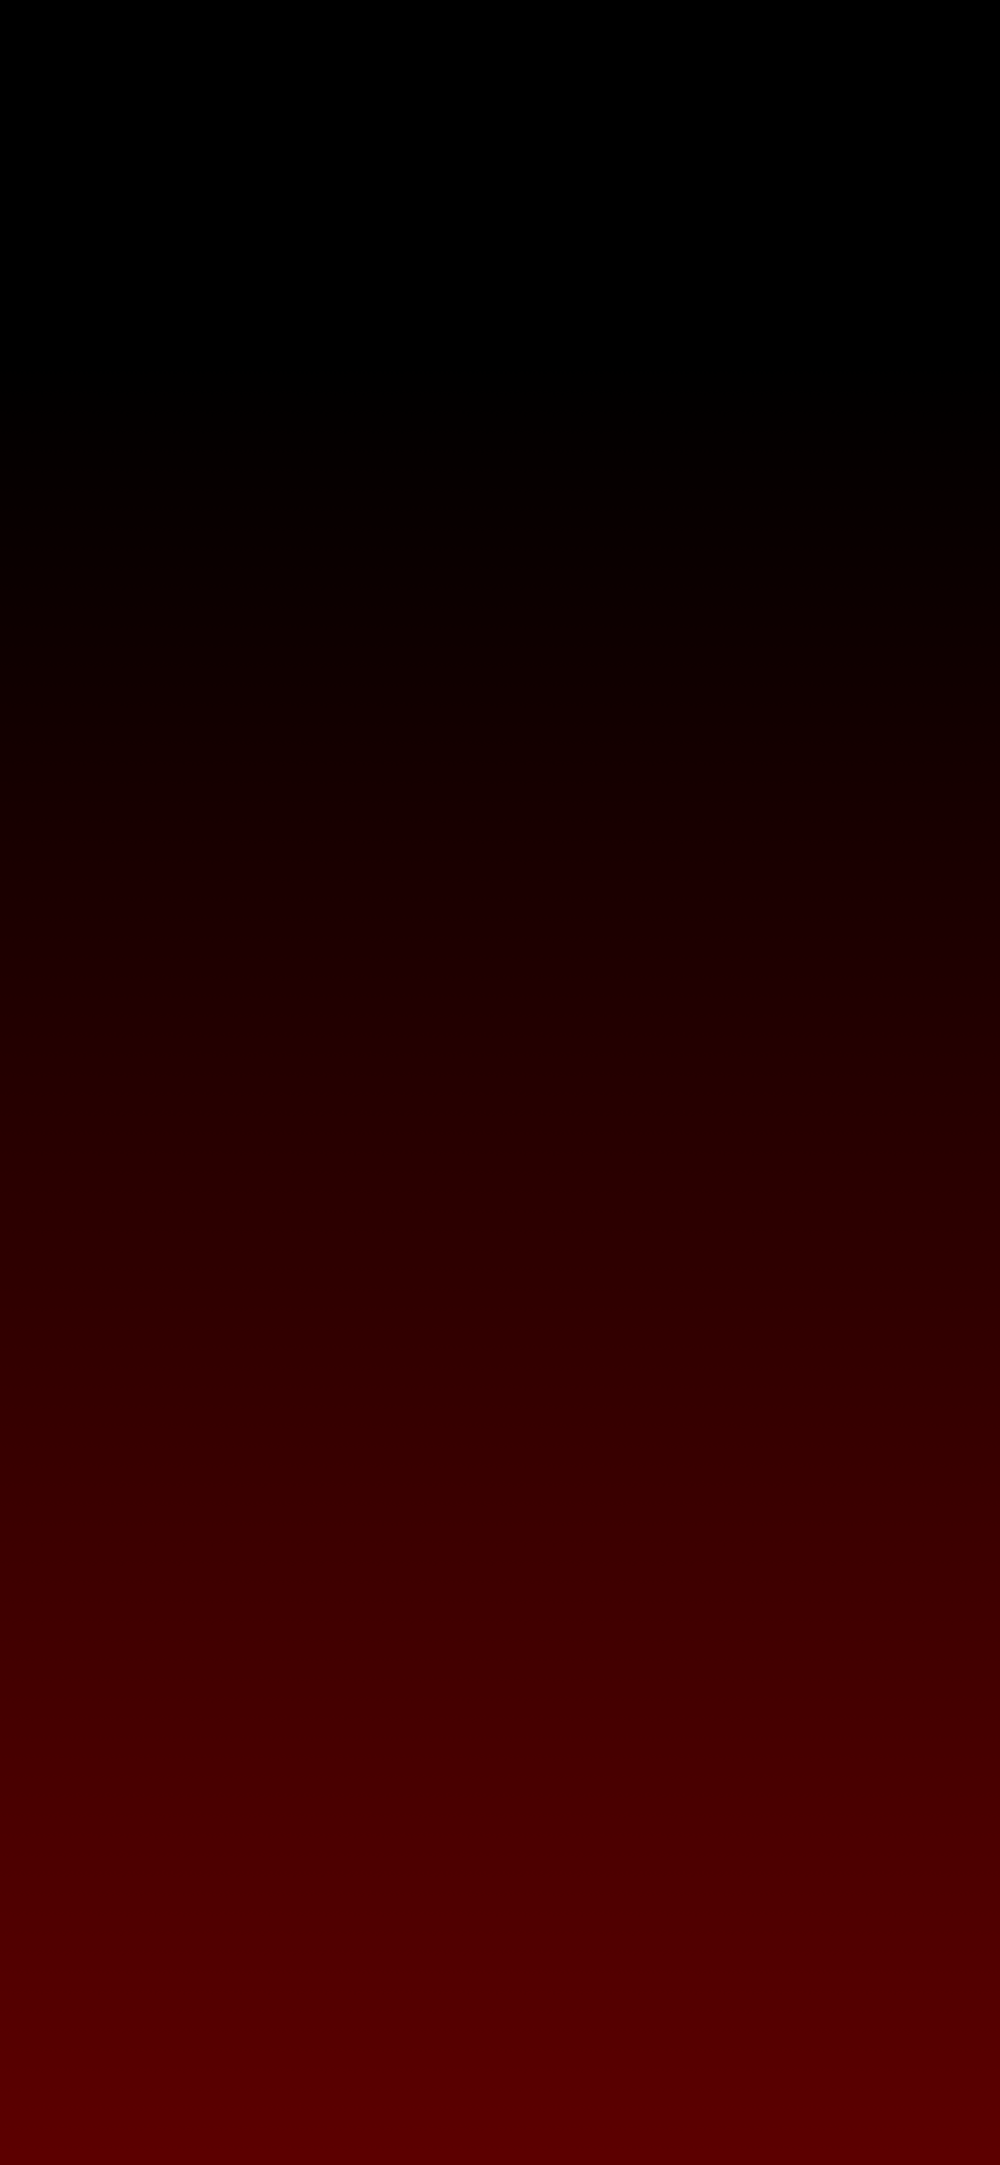 iPhone X Wallpaper Red